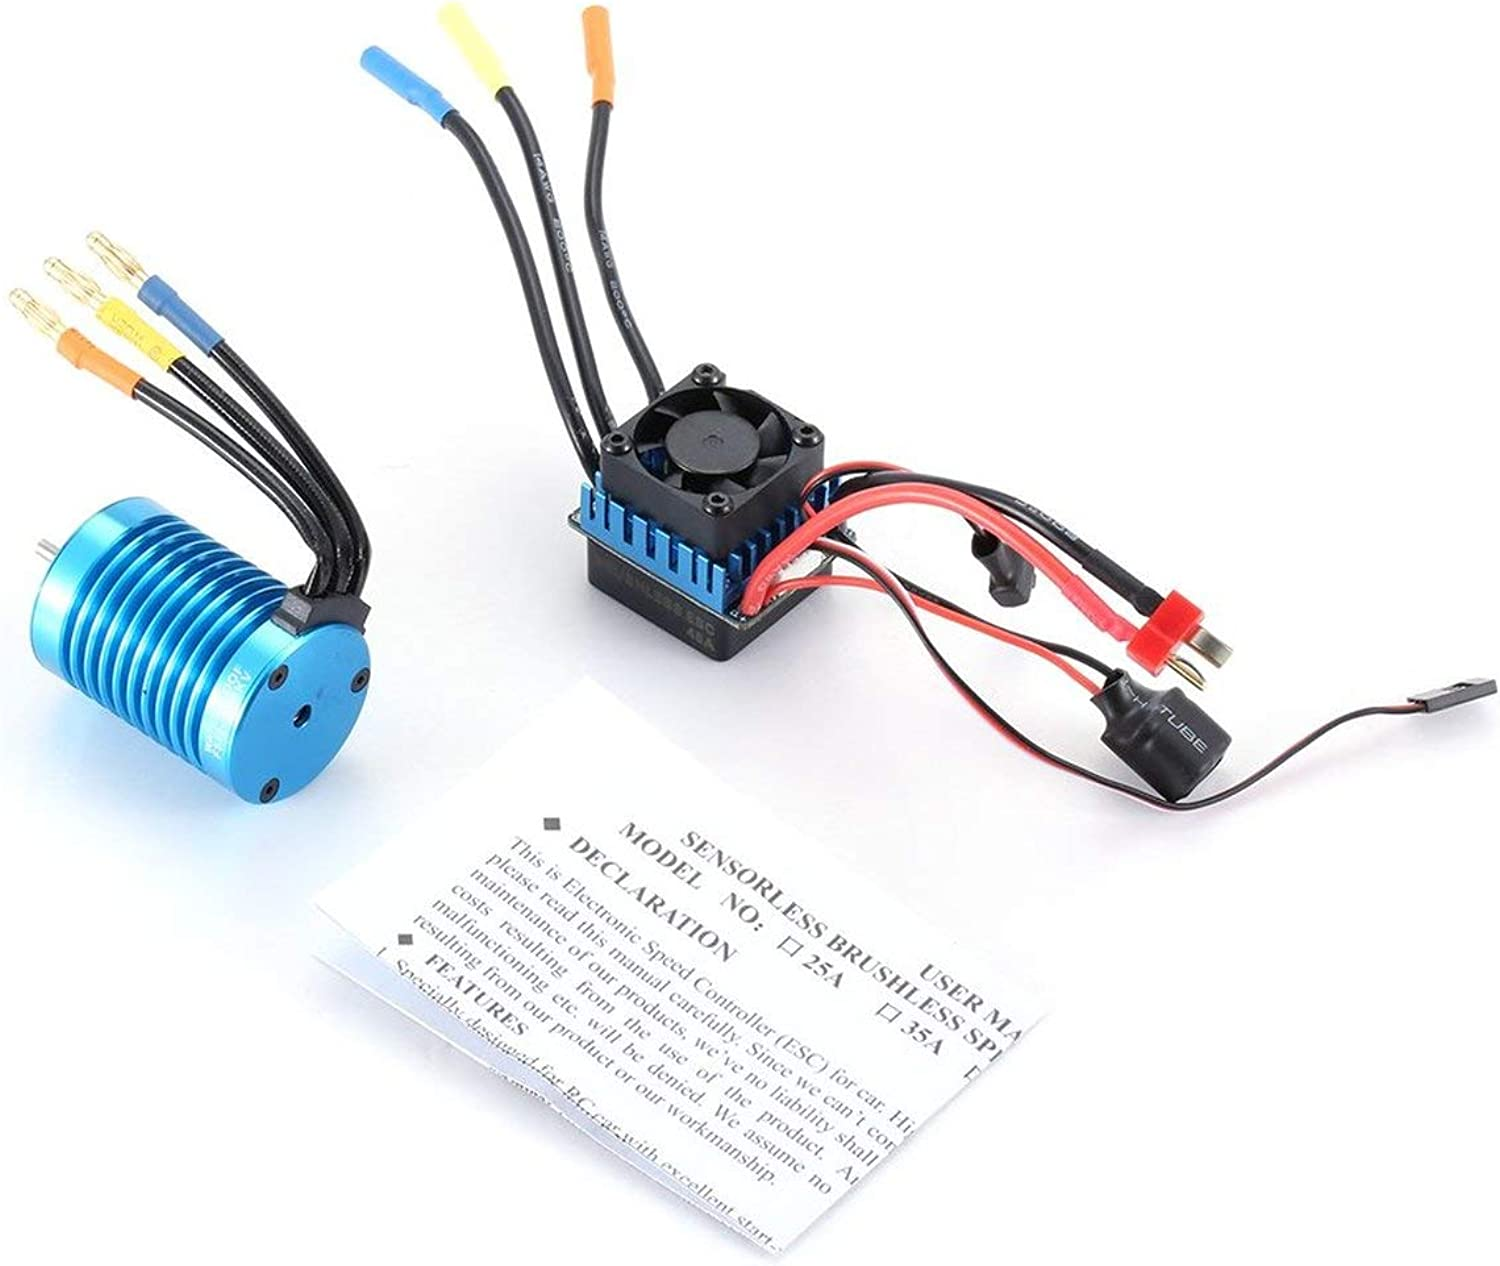 F540 4370KV Sensorless Brushless Motor with 45A ESC Electric Speed Controller Combo Set for 1 10 Scale RC Car Truck